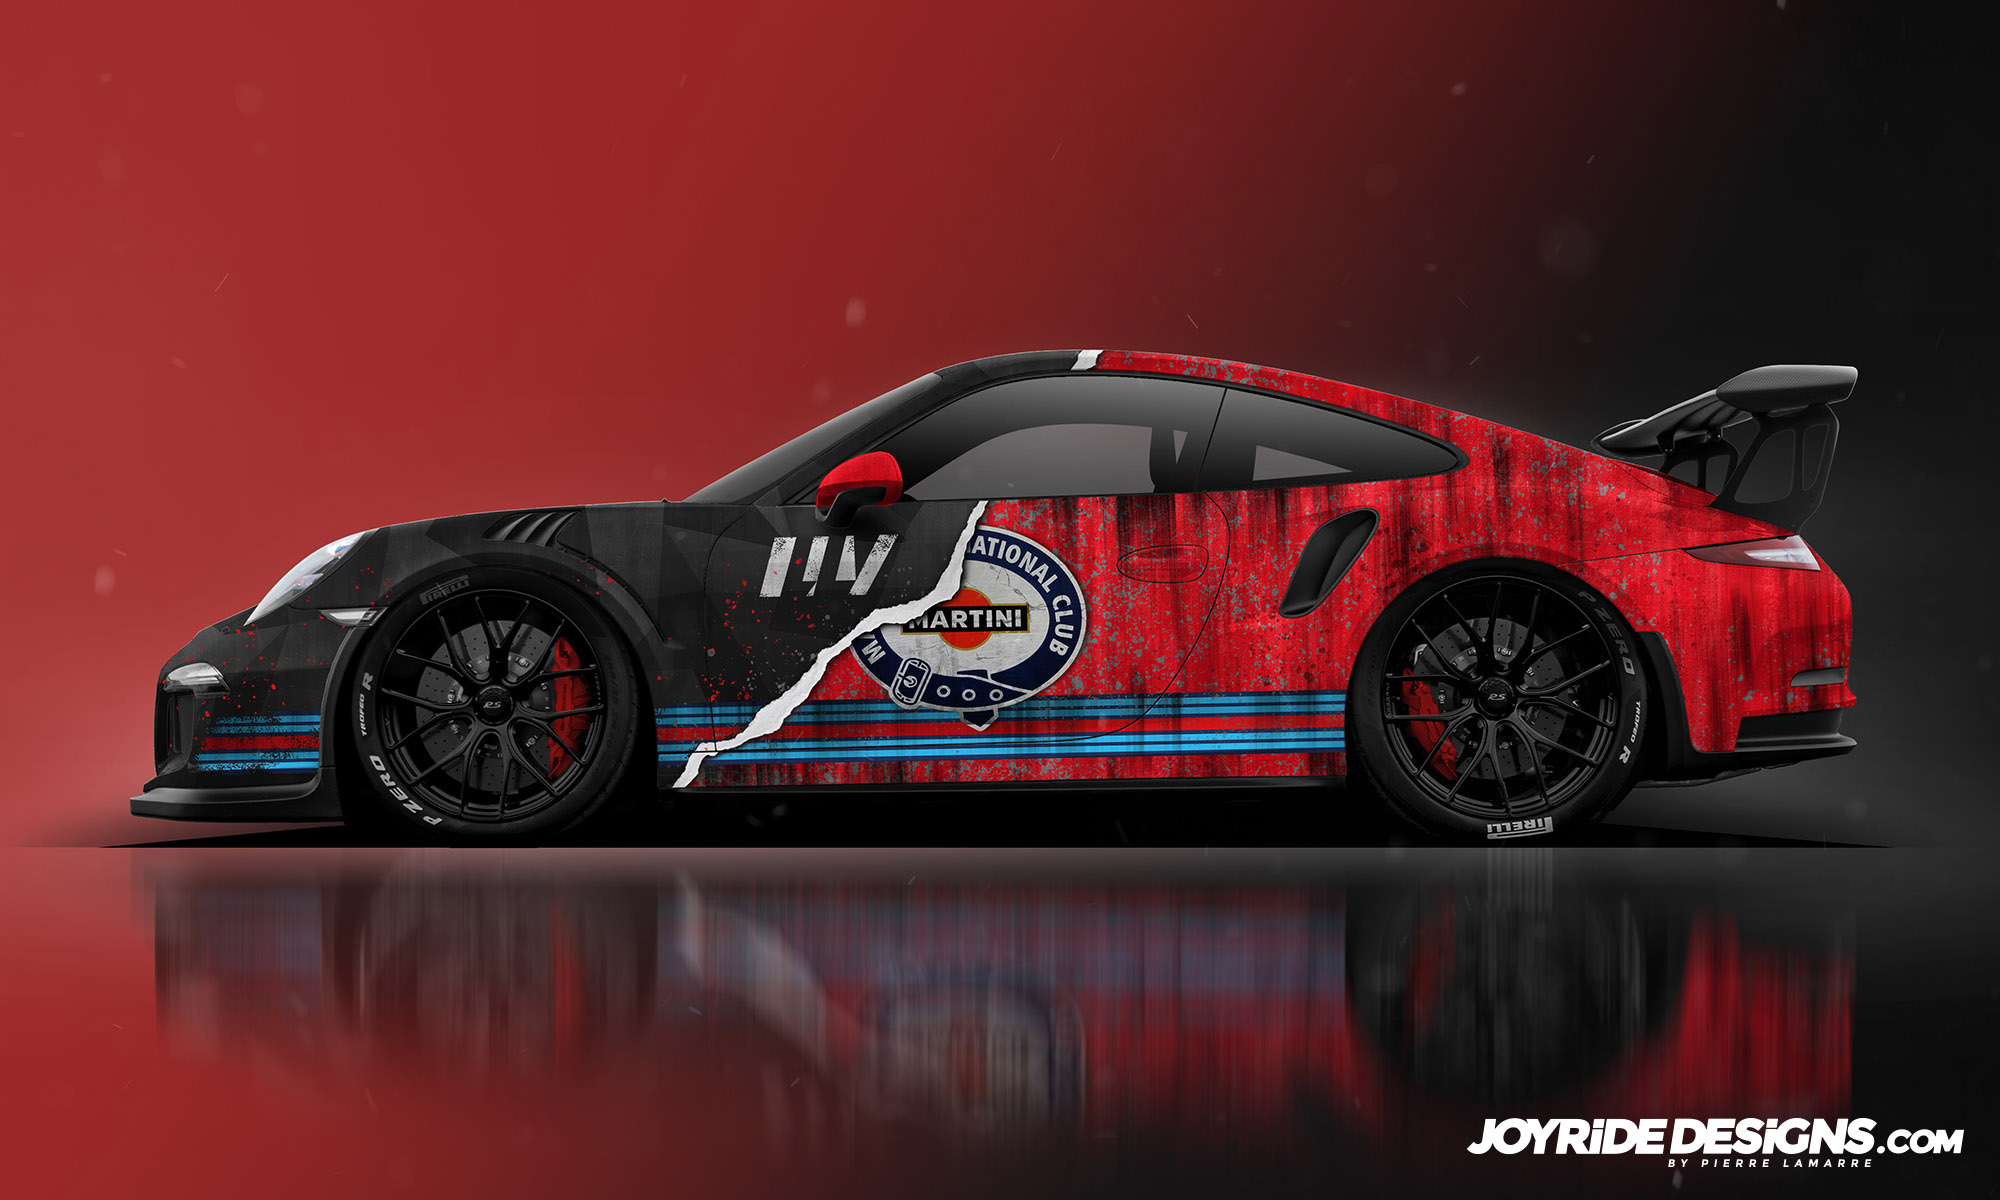 PORSCHE GT3RS LLV MARTINI RACING JOYRIDE WRAP DESIGN SIDE